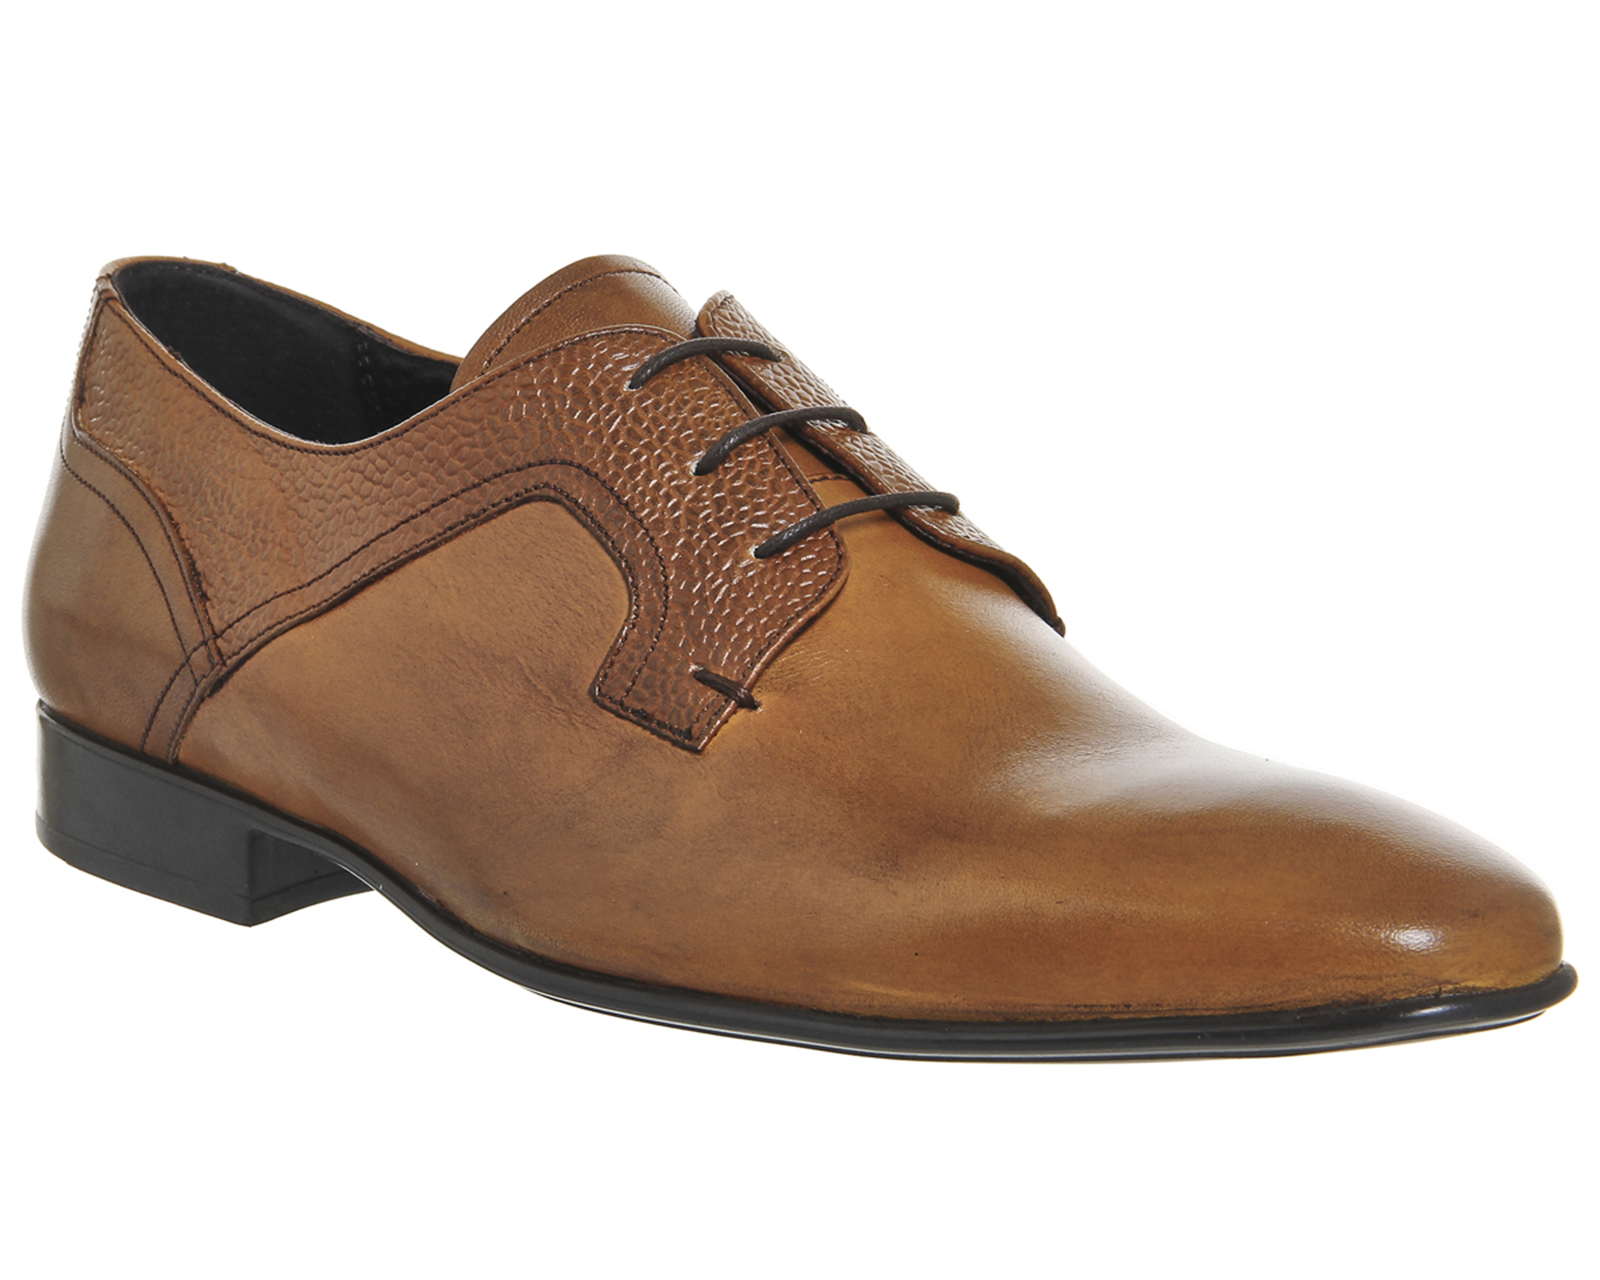 details about mens ask the missus emmett plain toe tan leather formal